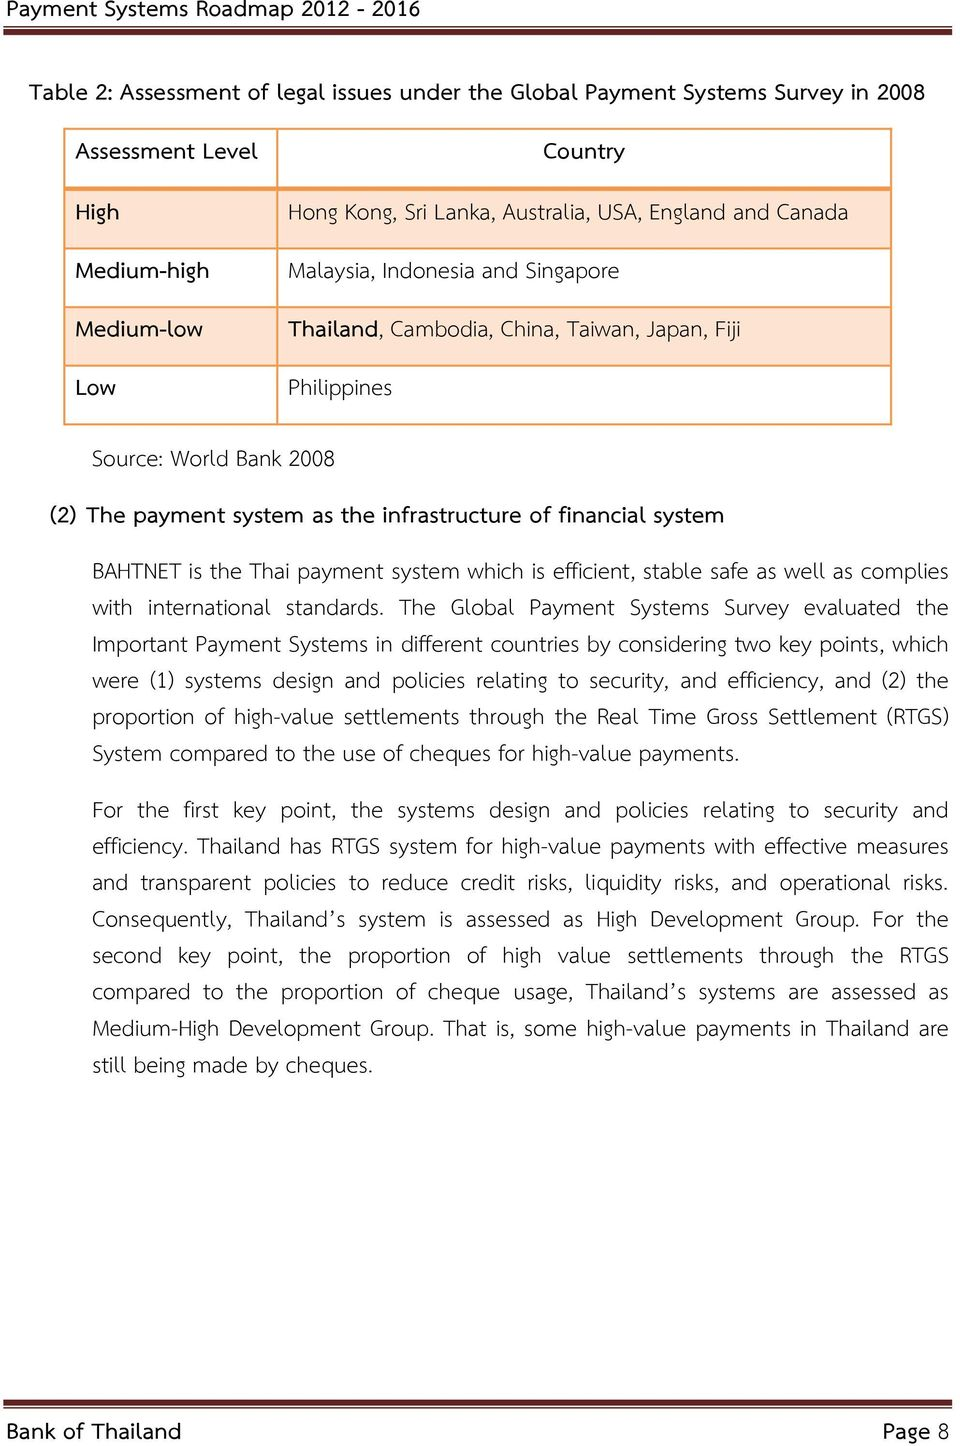 Thai payment system which is efficient, stable safe as well as complies with international standards.